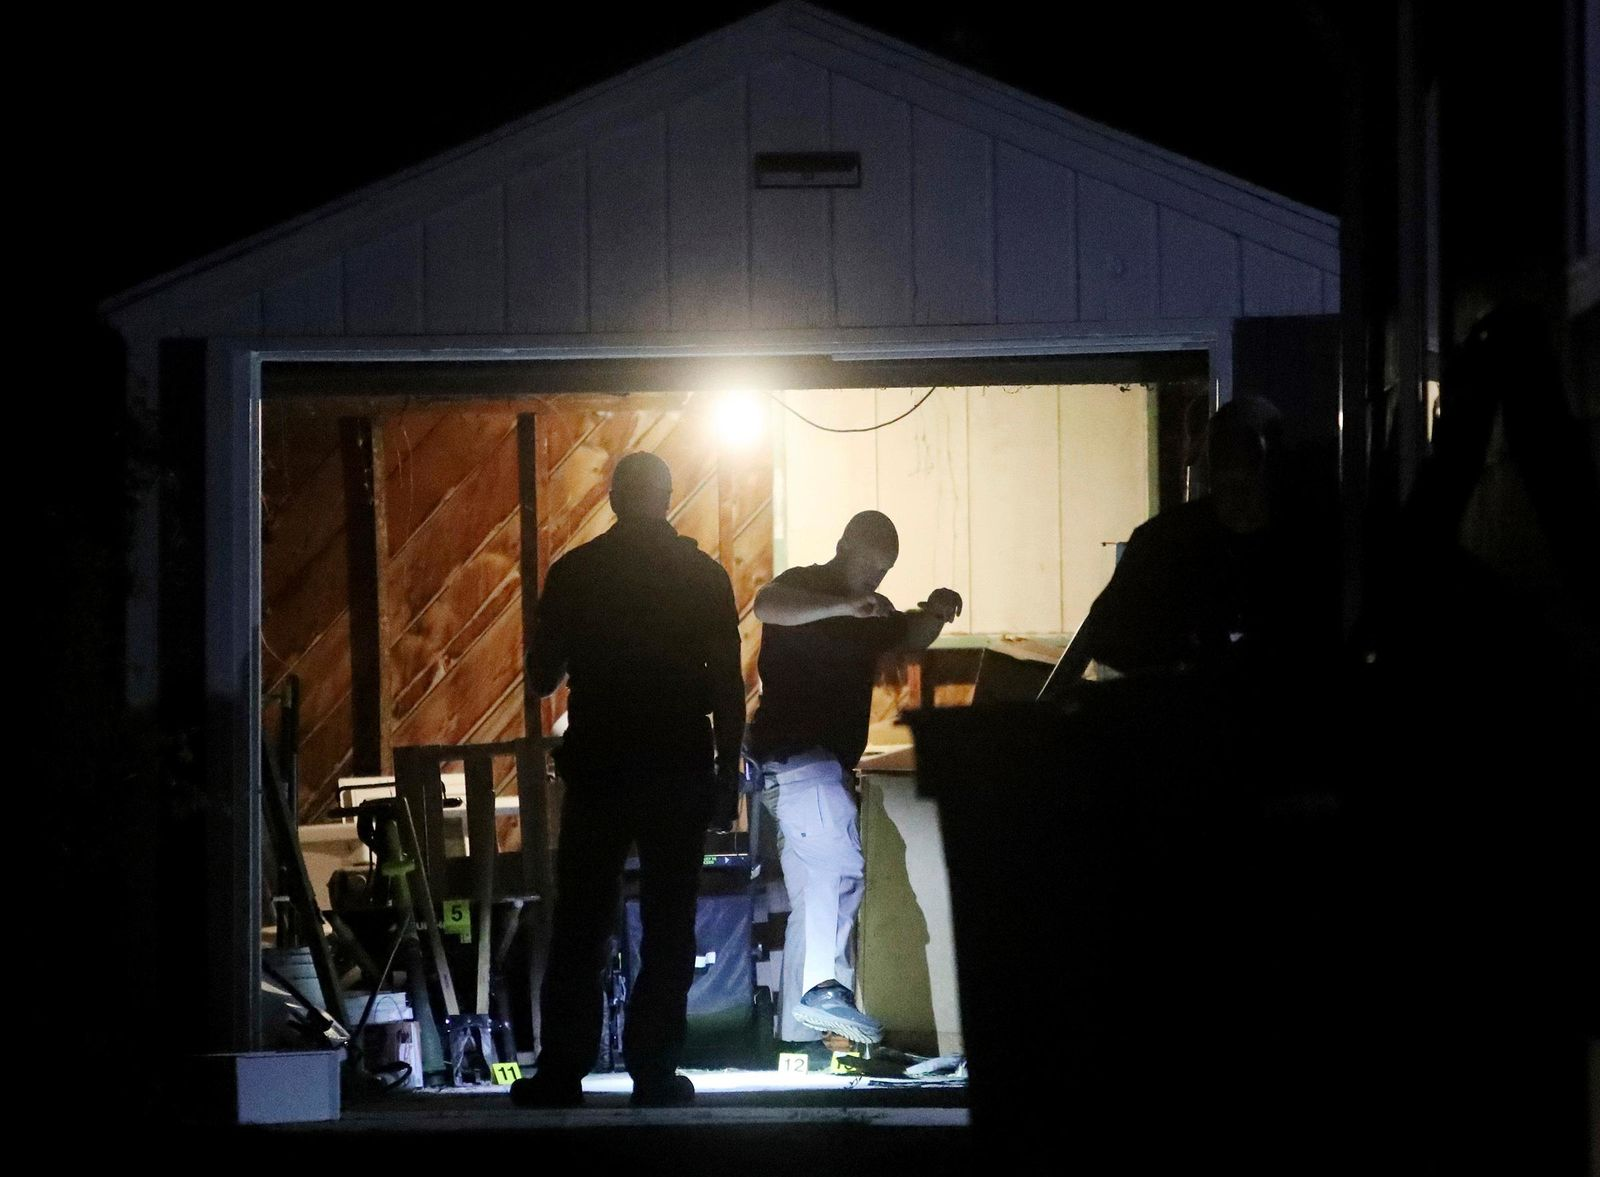 Salt Lake City Police search a home in connection to the disappearance of University of Utah Student Mackenzie Lueck on Wednesday, June 26, 2019, in Salt Lake City. Salt Lake City Assistant Police Chief Tim Doubt said Wednesday night that detectives were serving a search warrant at the home in relation to the case, but refused to provide any more details. (Scott G Winterton/The Deseret News via AP)